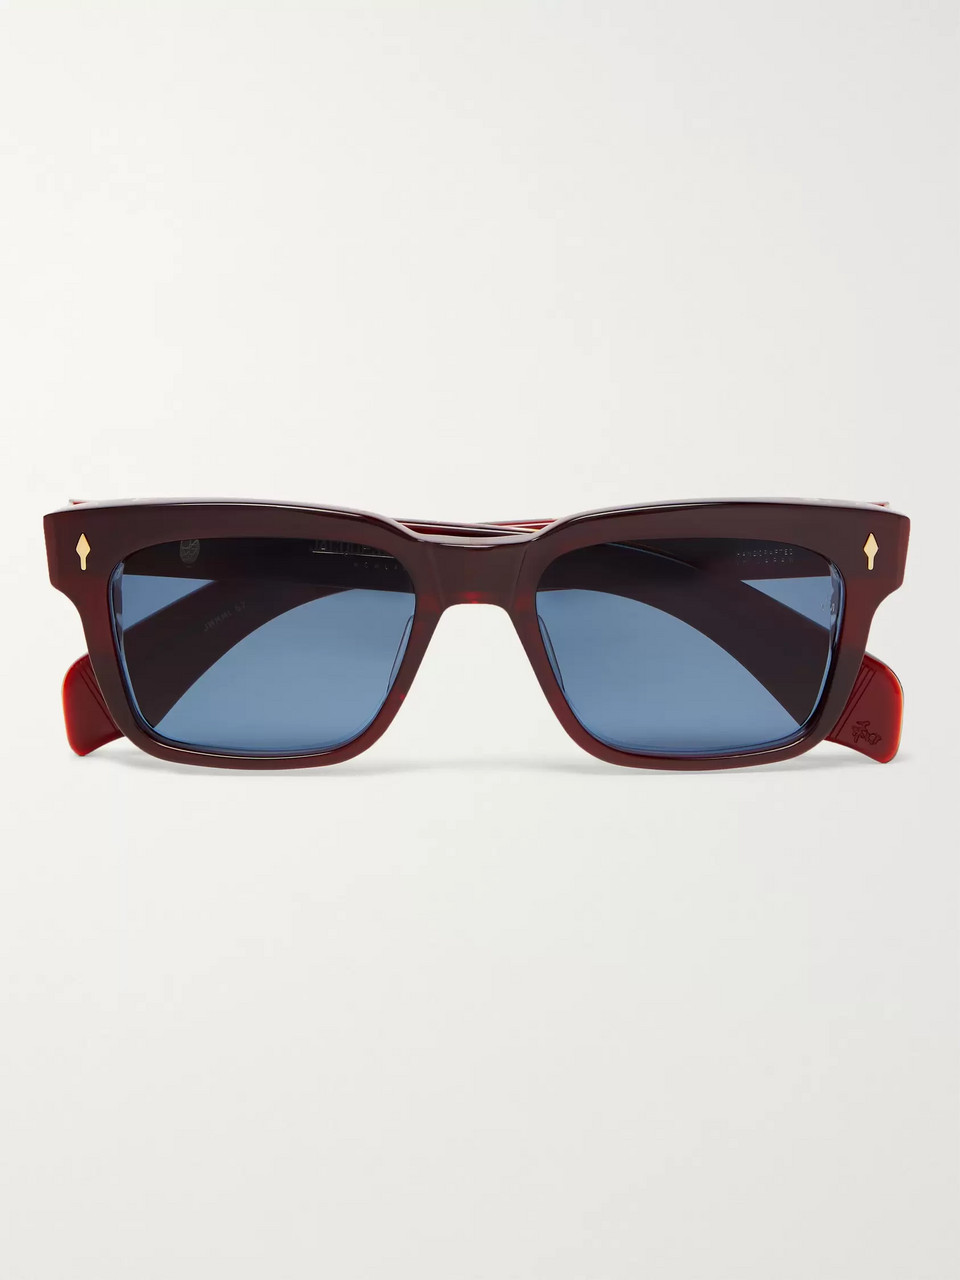 Jacques Marie Mage Molino Square-Frame Acetate and 18-Karat Gold Sunglasses